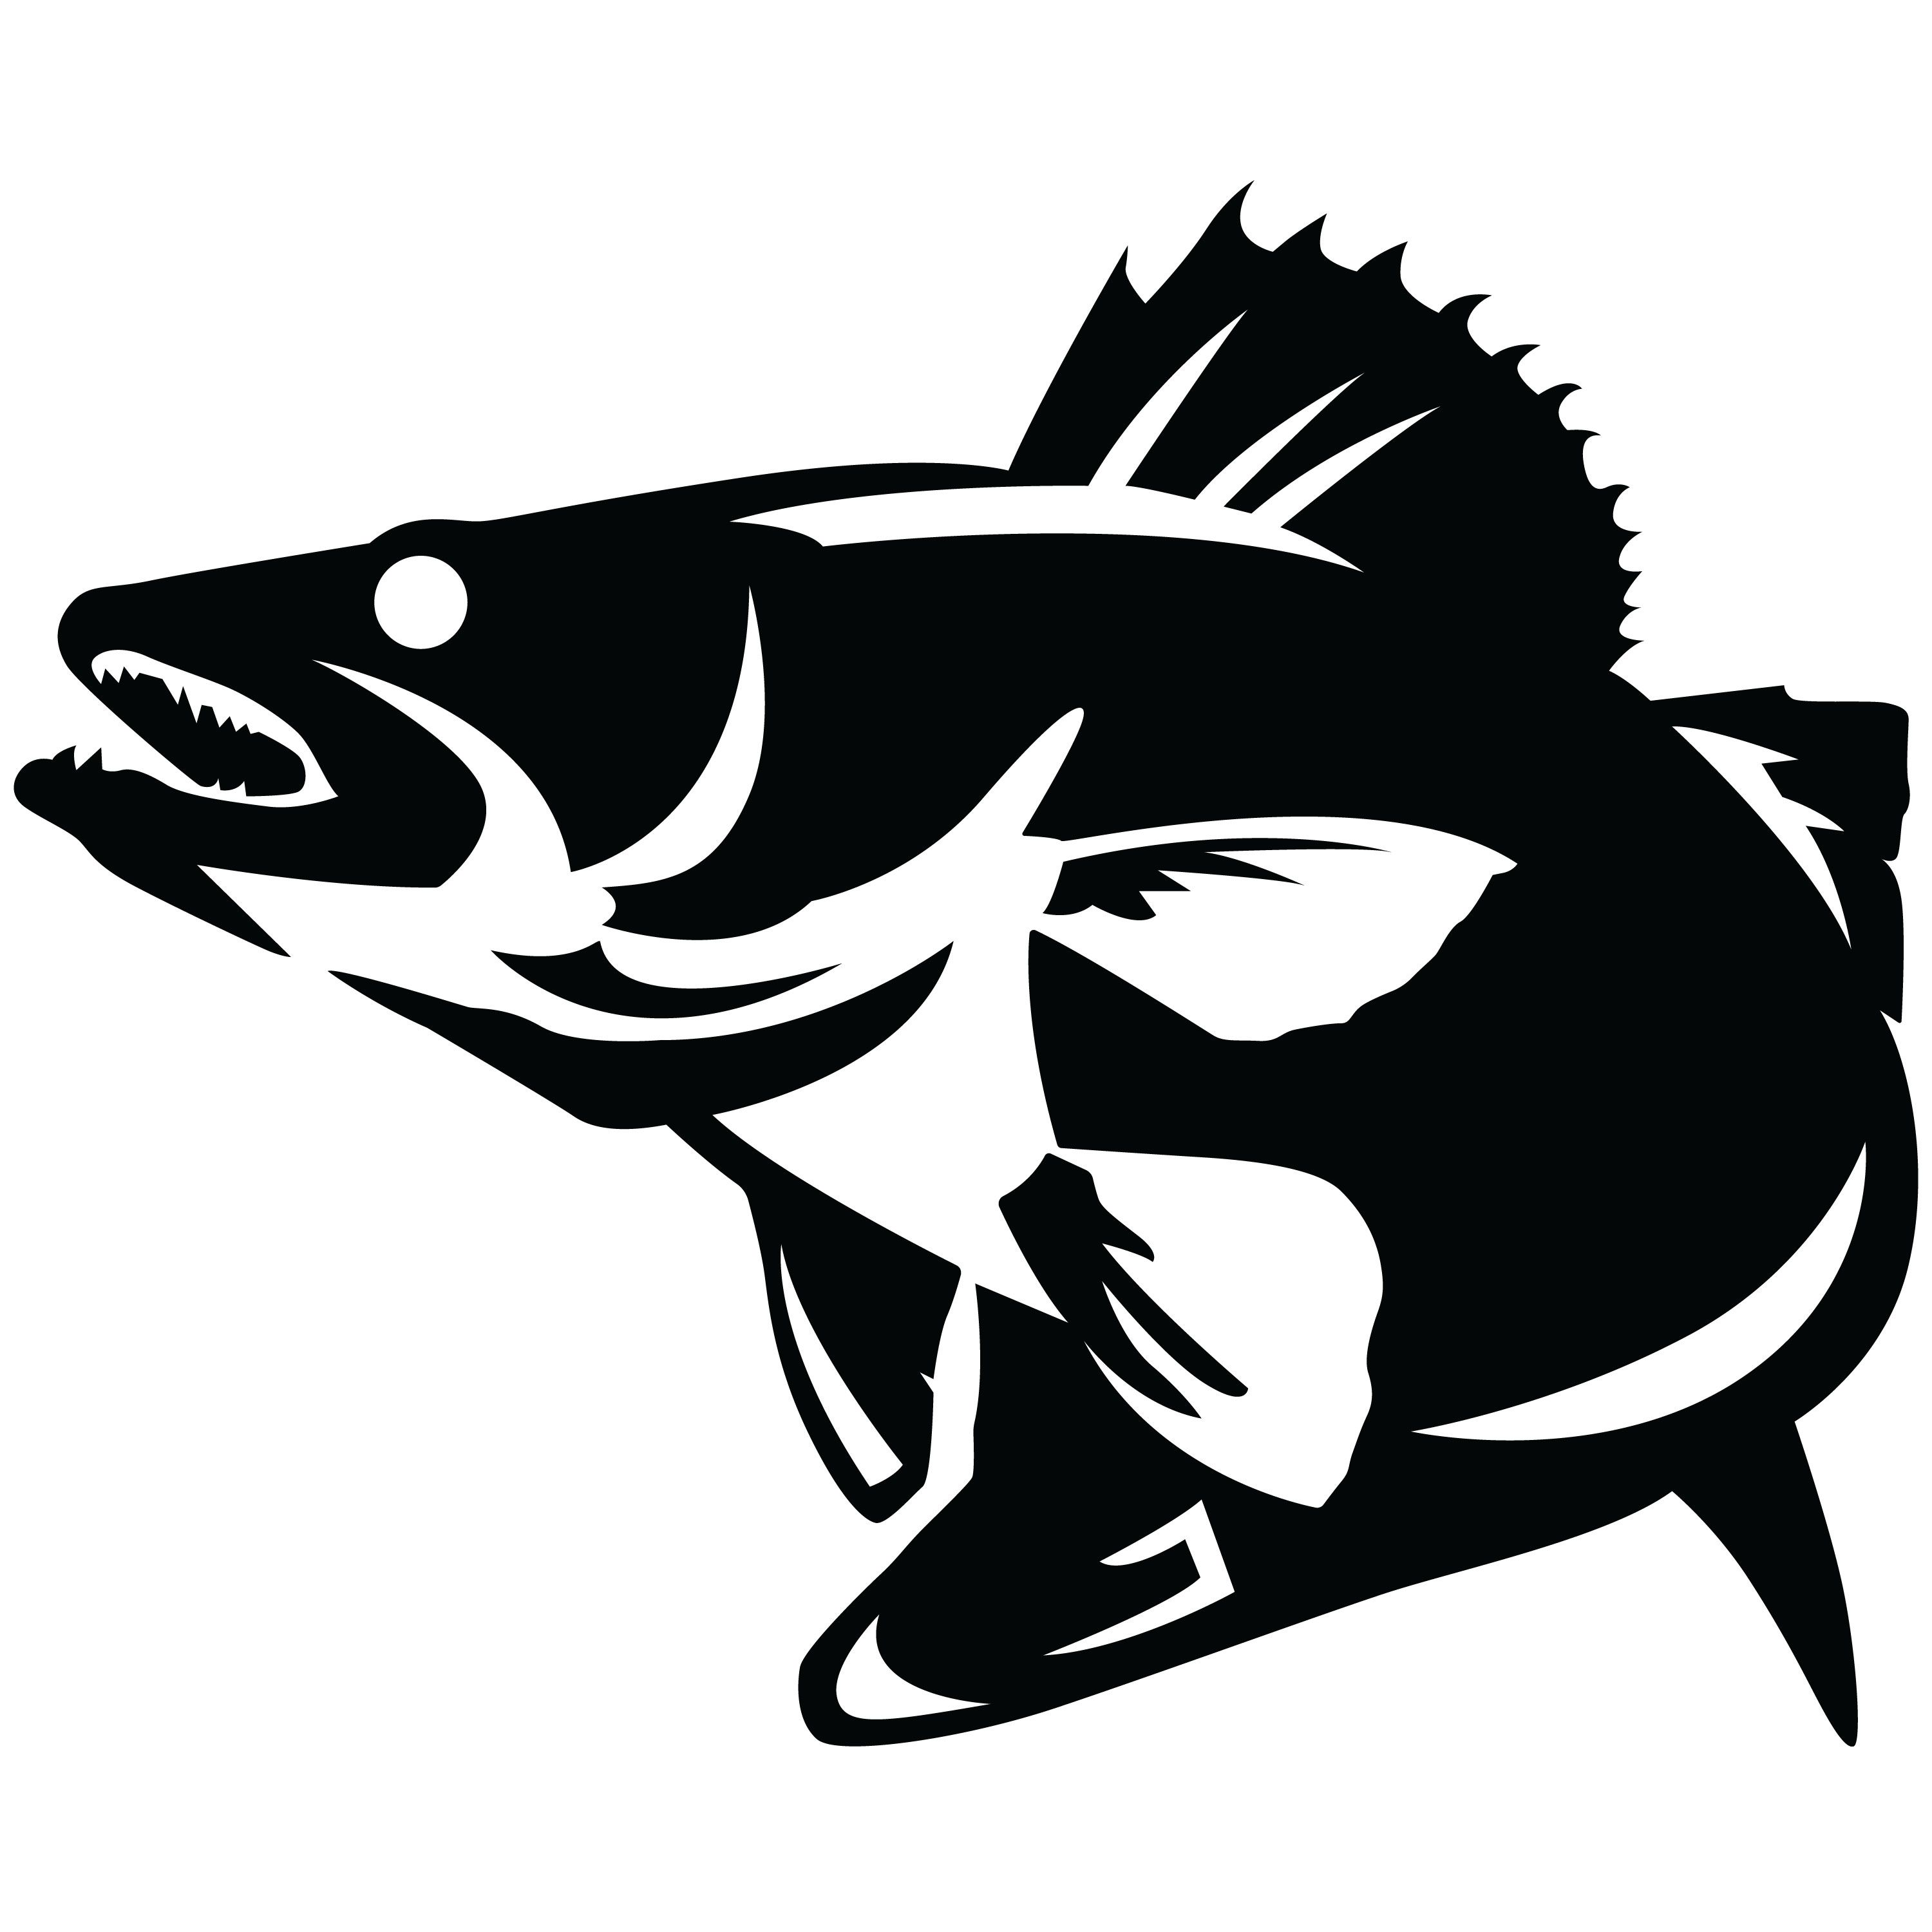 Fishing sayings clipart clip art black and white Image result for walleye fishing sayings | Crafts | Fish silhouette ... clip art black and white